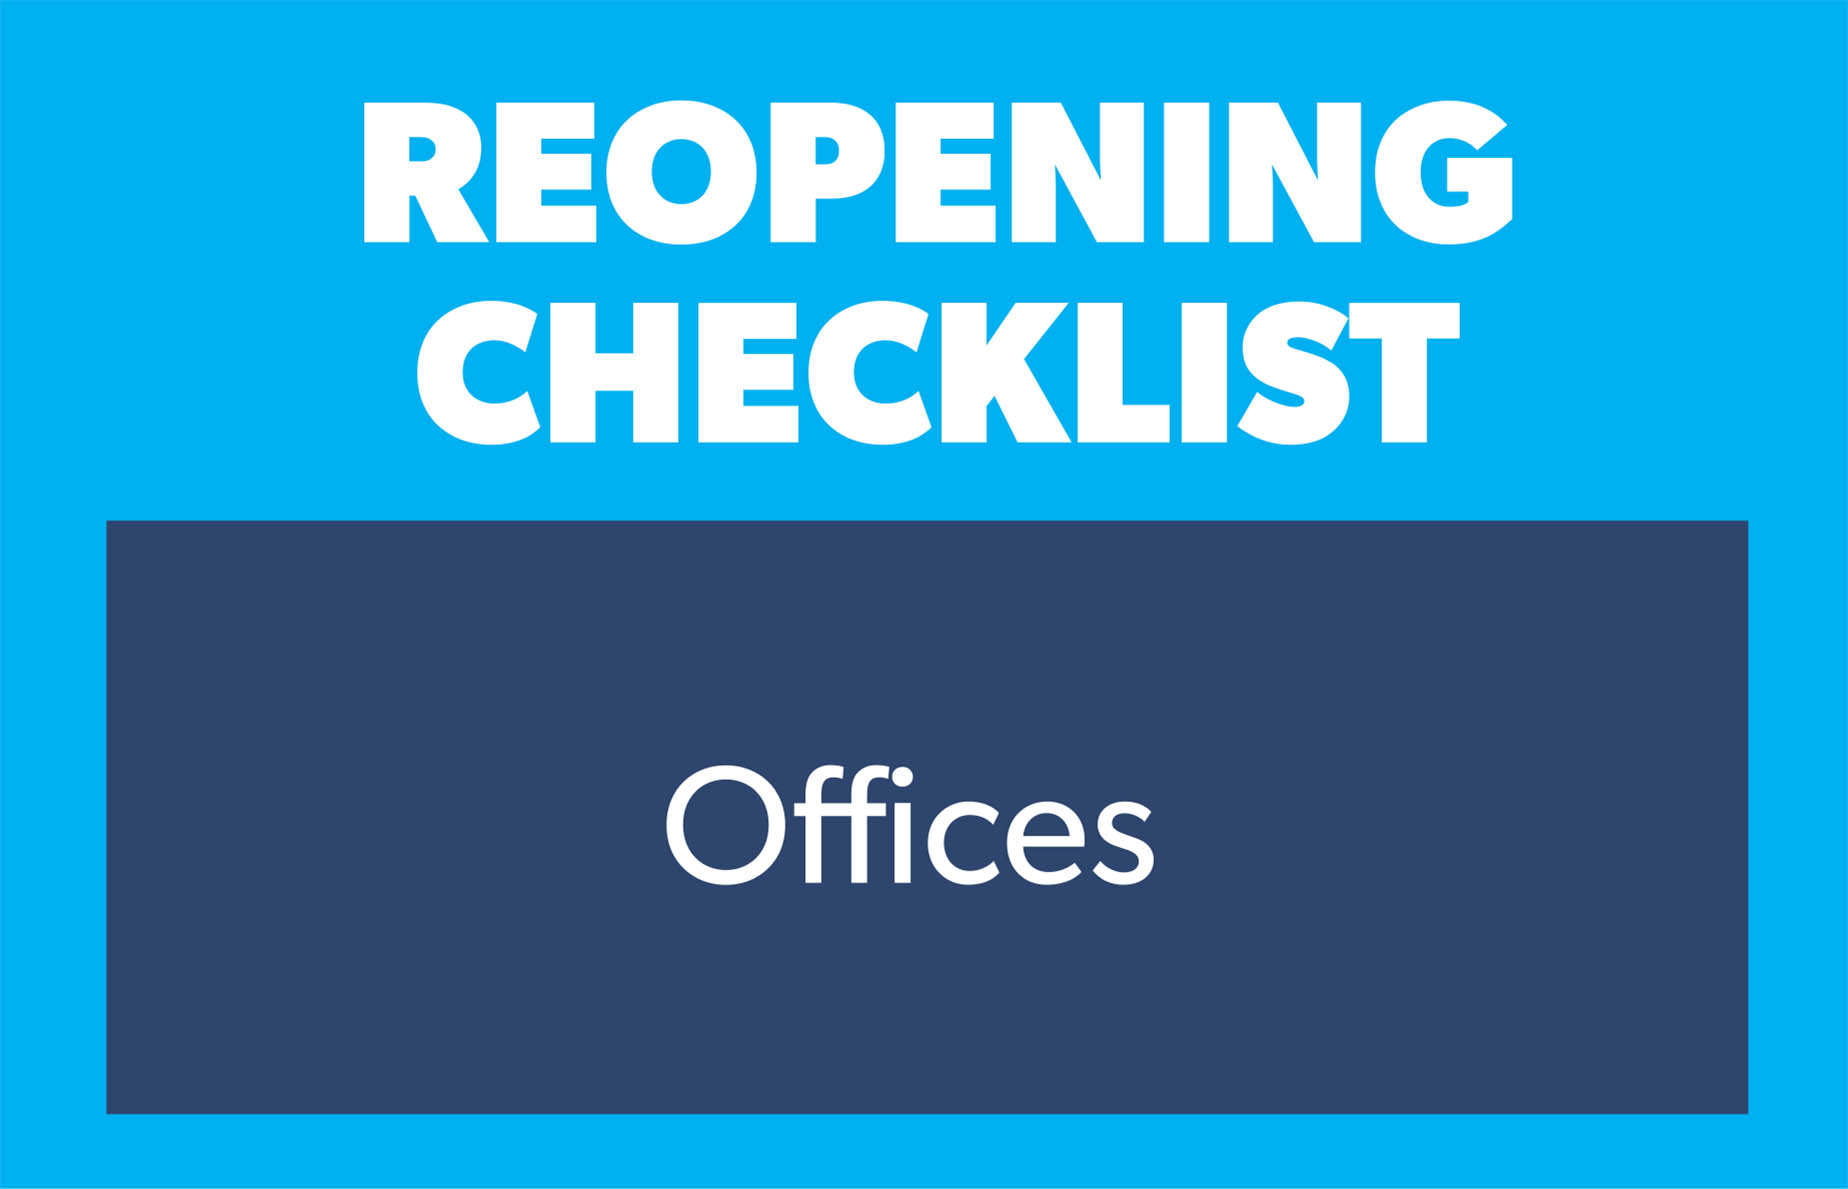 checklist offices